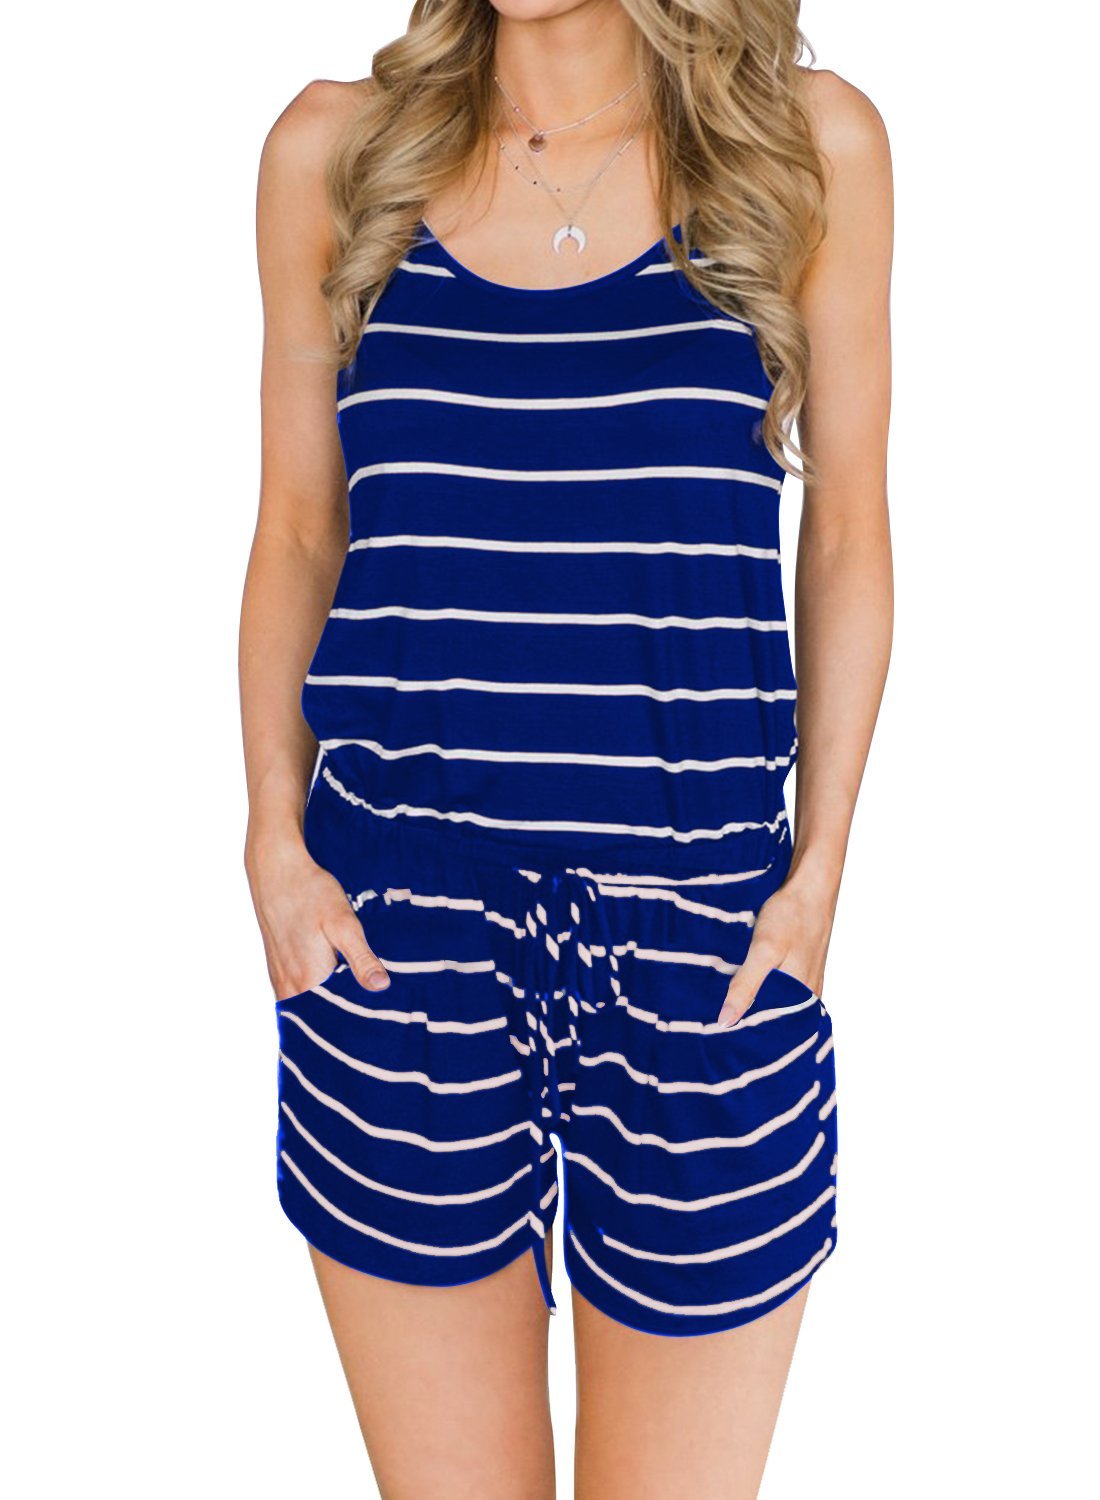 MIHOLL Women's Summer Striped Jumpsuit Casual Loose Sleeveless Jumpsuit Rompers (Medium, A-Blue)